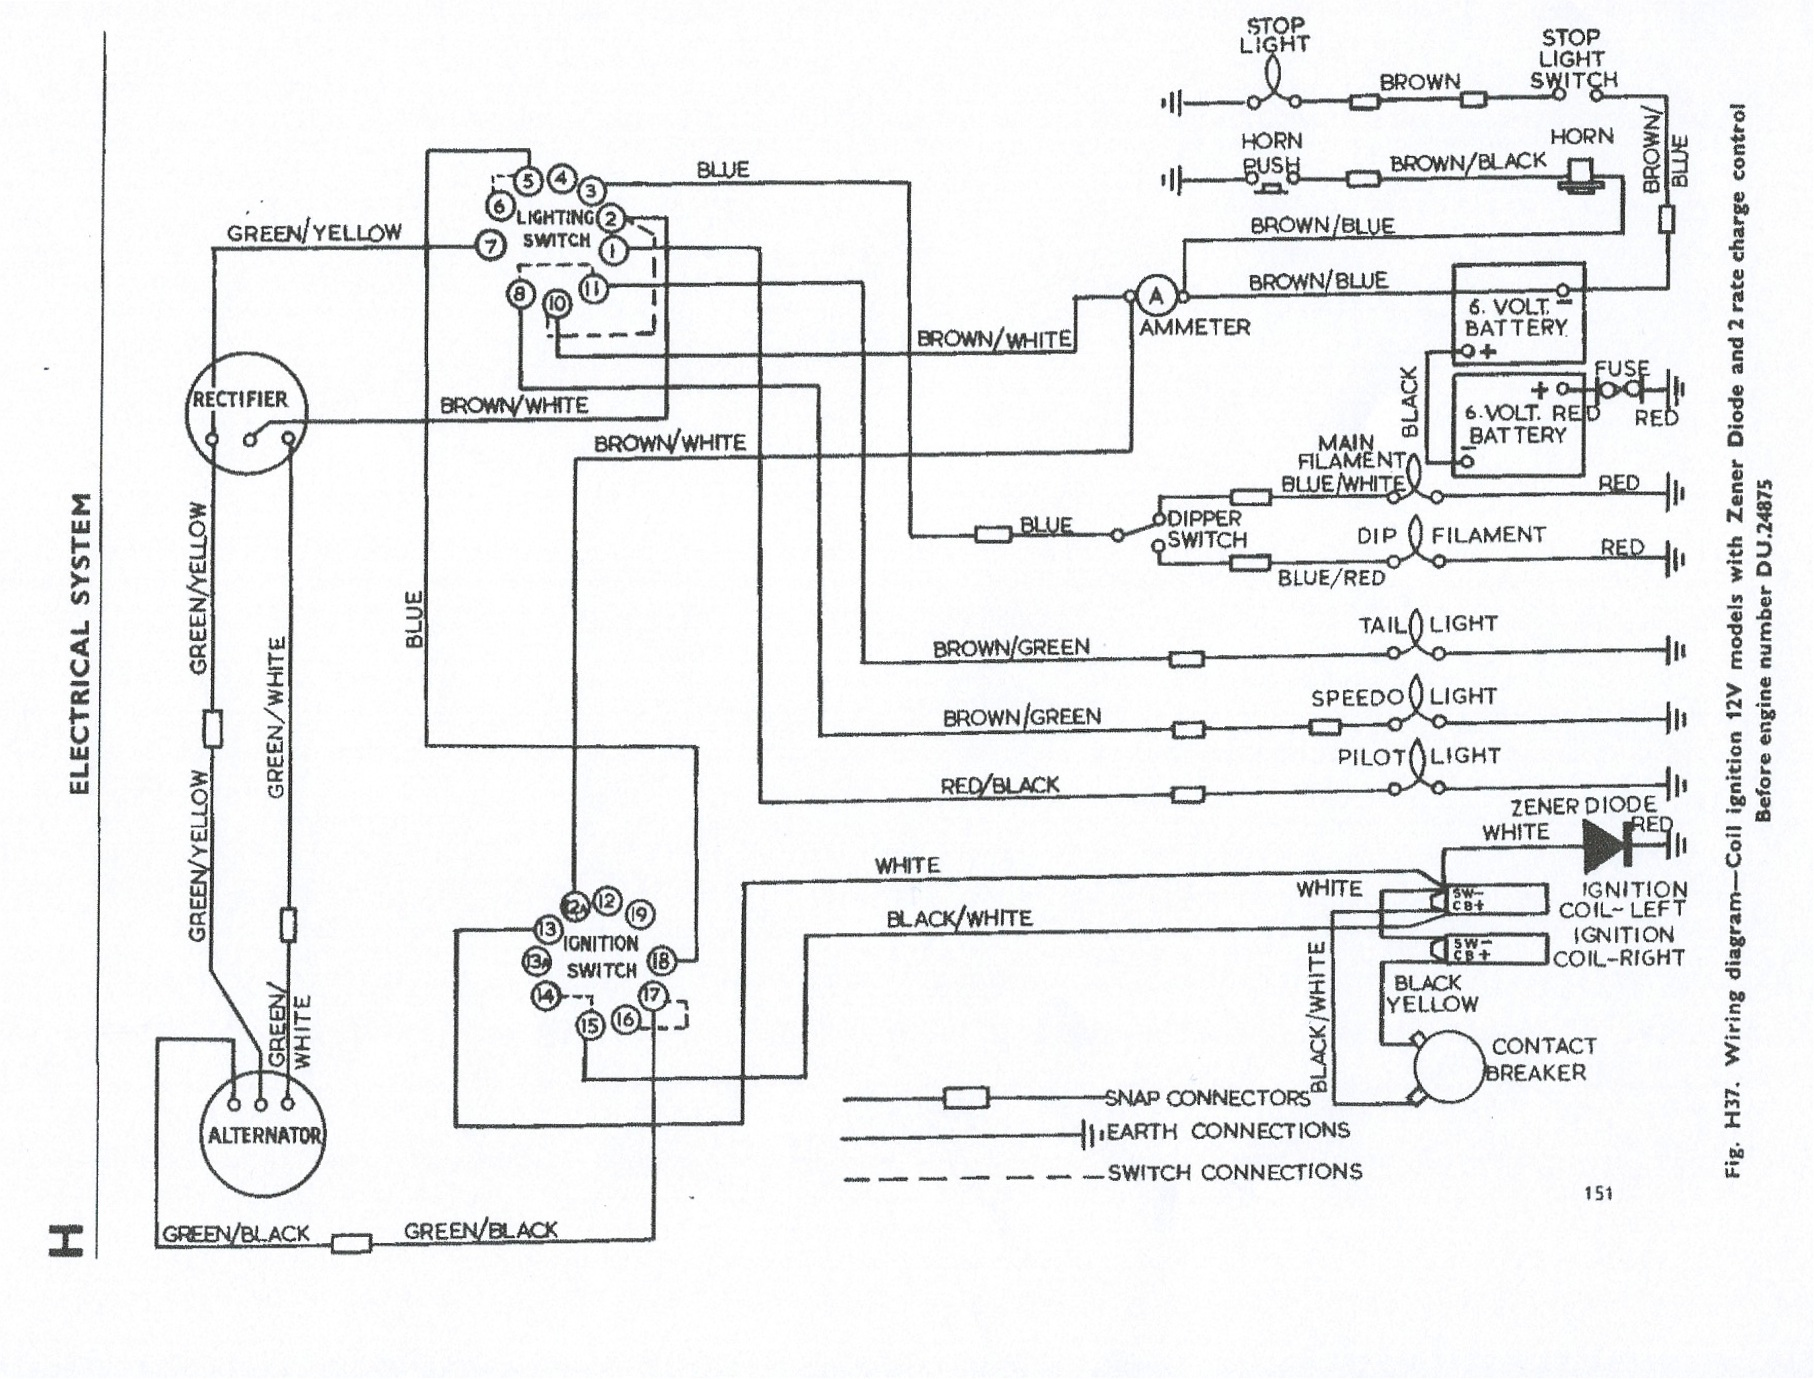 Terry Taurus Wiring Diagram Worksheet And 2004 Ford Ignition 1971 Triumph Bonneville Harness Another Blog About Rh Ok2 Infoservice Ru 1993 Engine